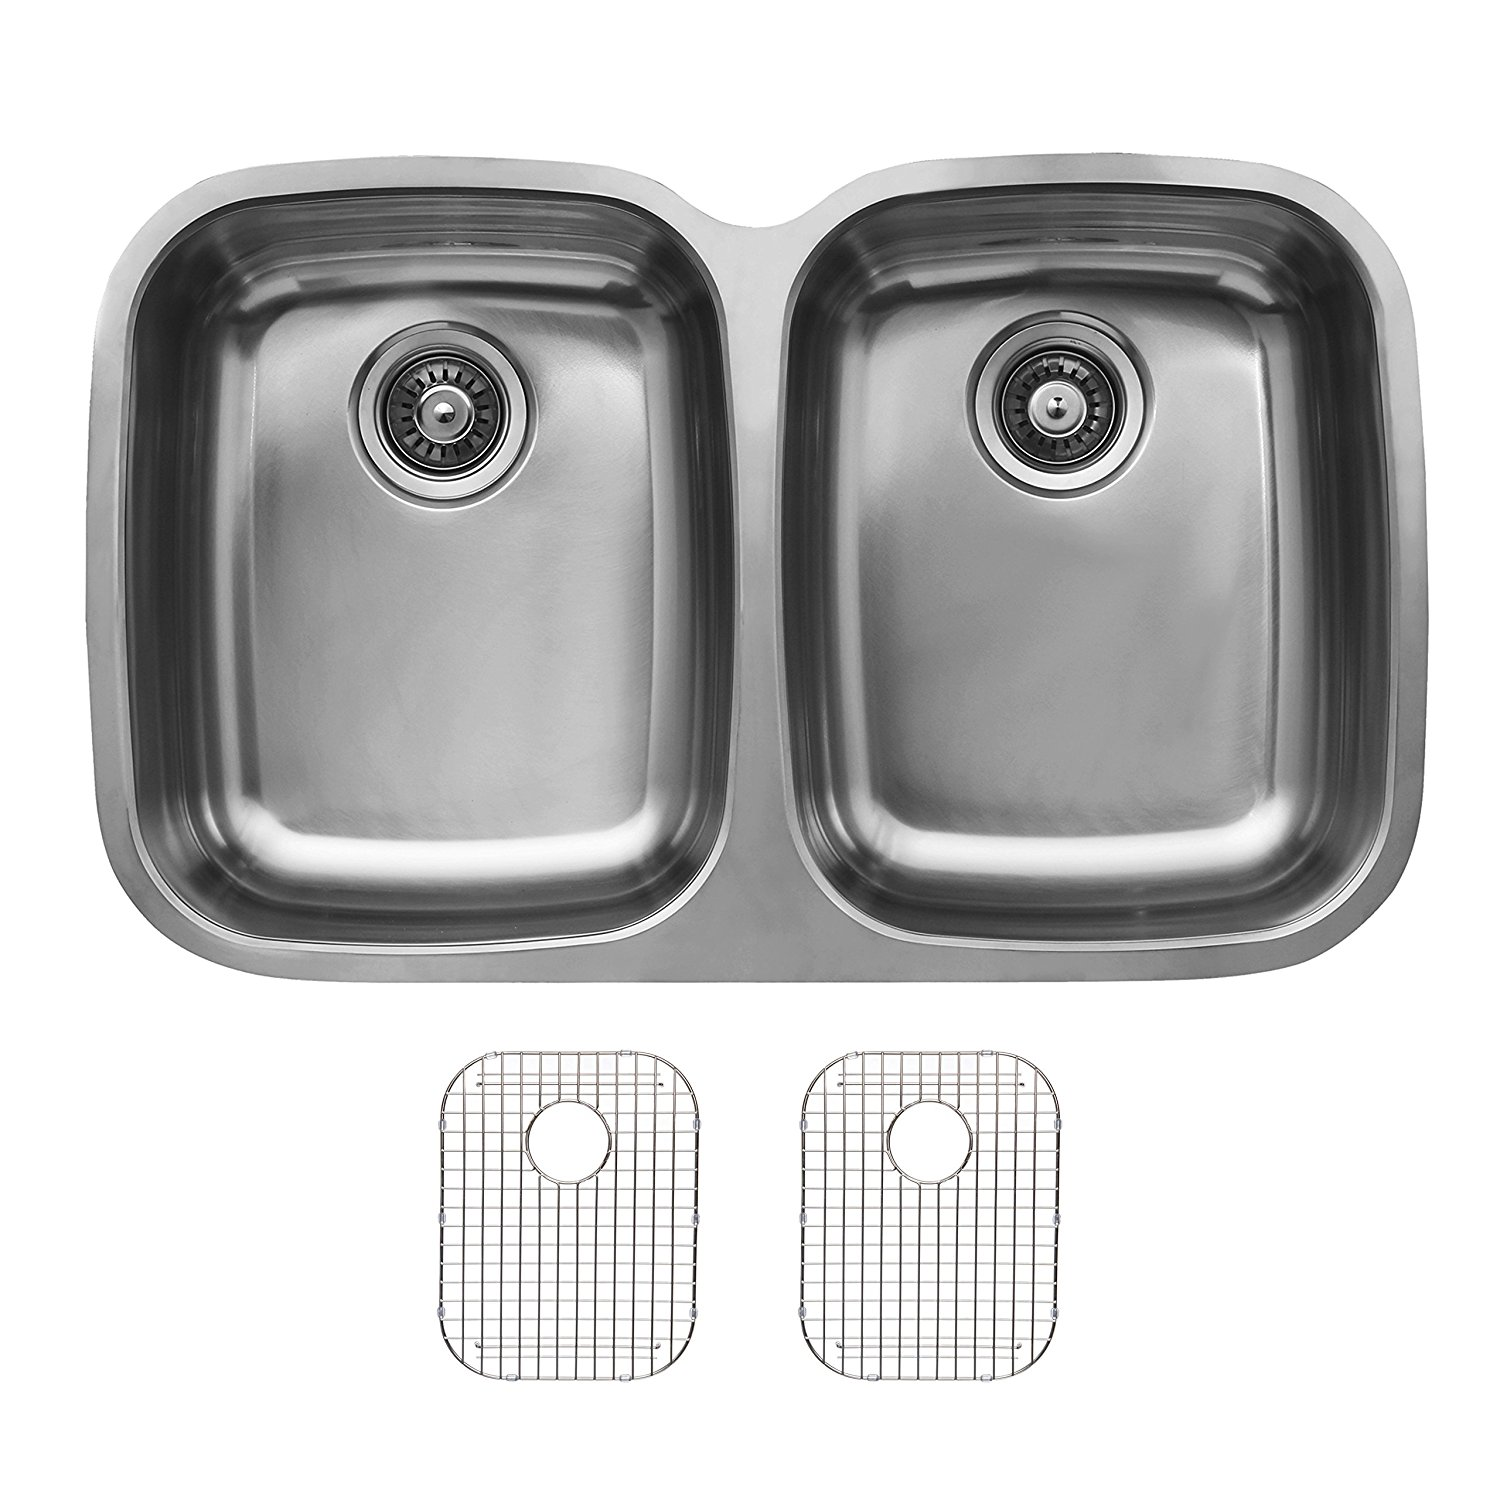 Ukinox D376.50.50.10G Undermount Double Bowl Stainless Steel Kitchen Sink With Bottom Grids